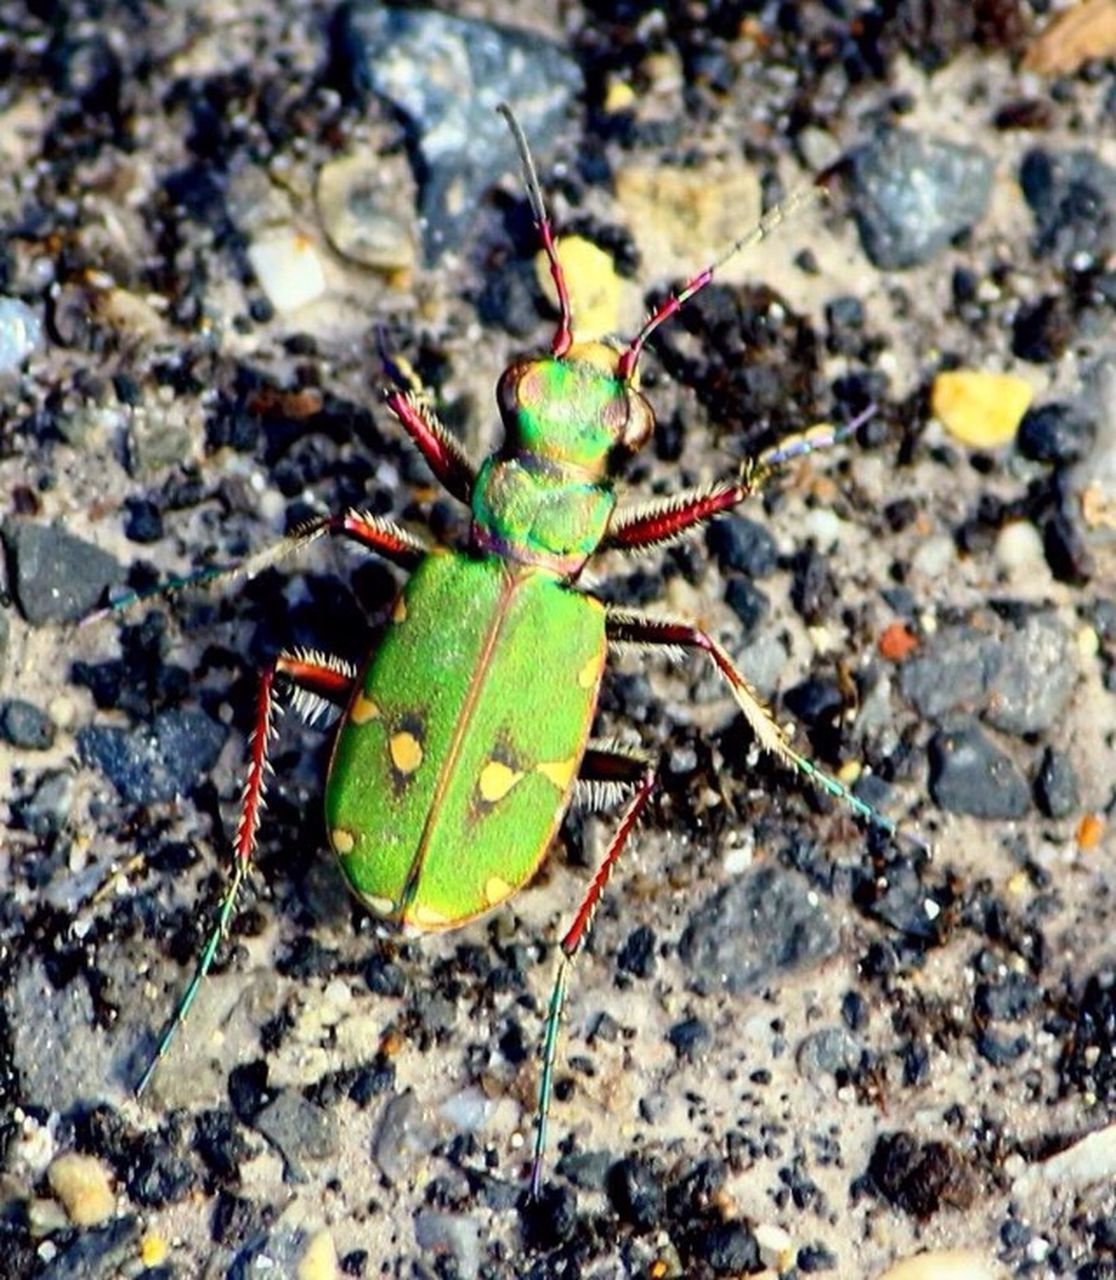 insect, animal themes, animals in the wild, one animal, high angle view, close-up, no people, leaf, day, outdoors, green color, animal wildlife, nature, full length, fragility